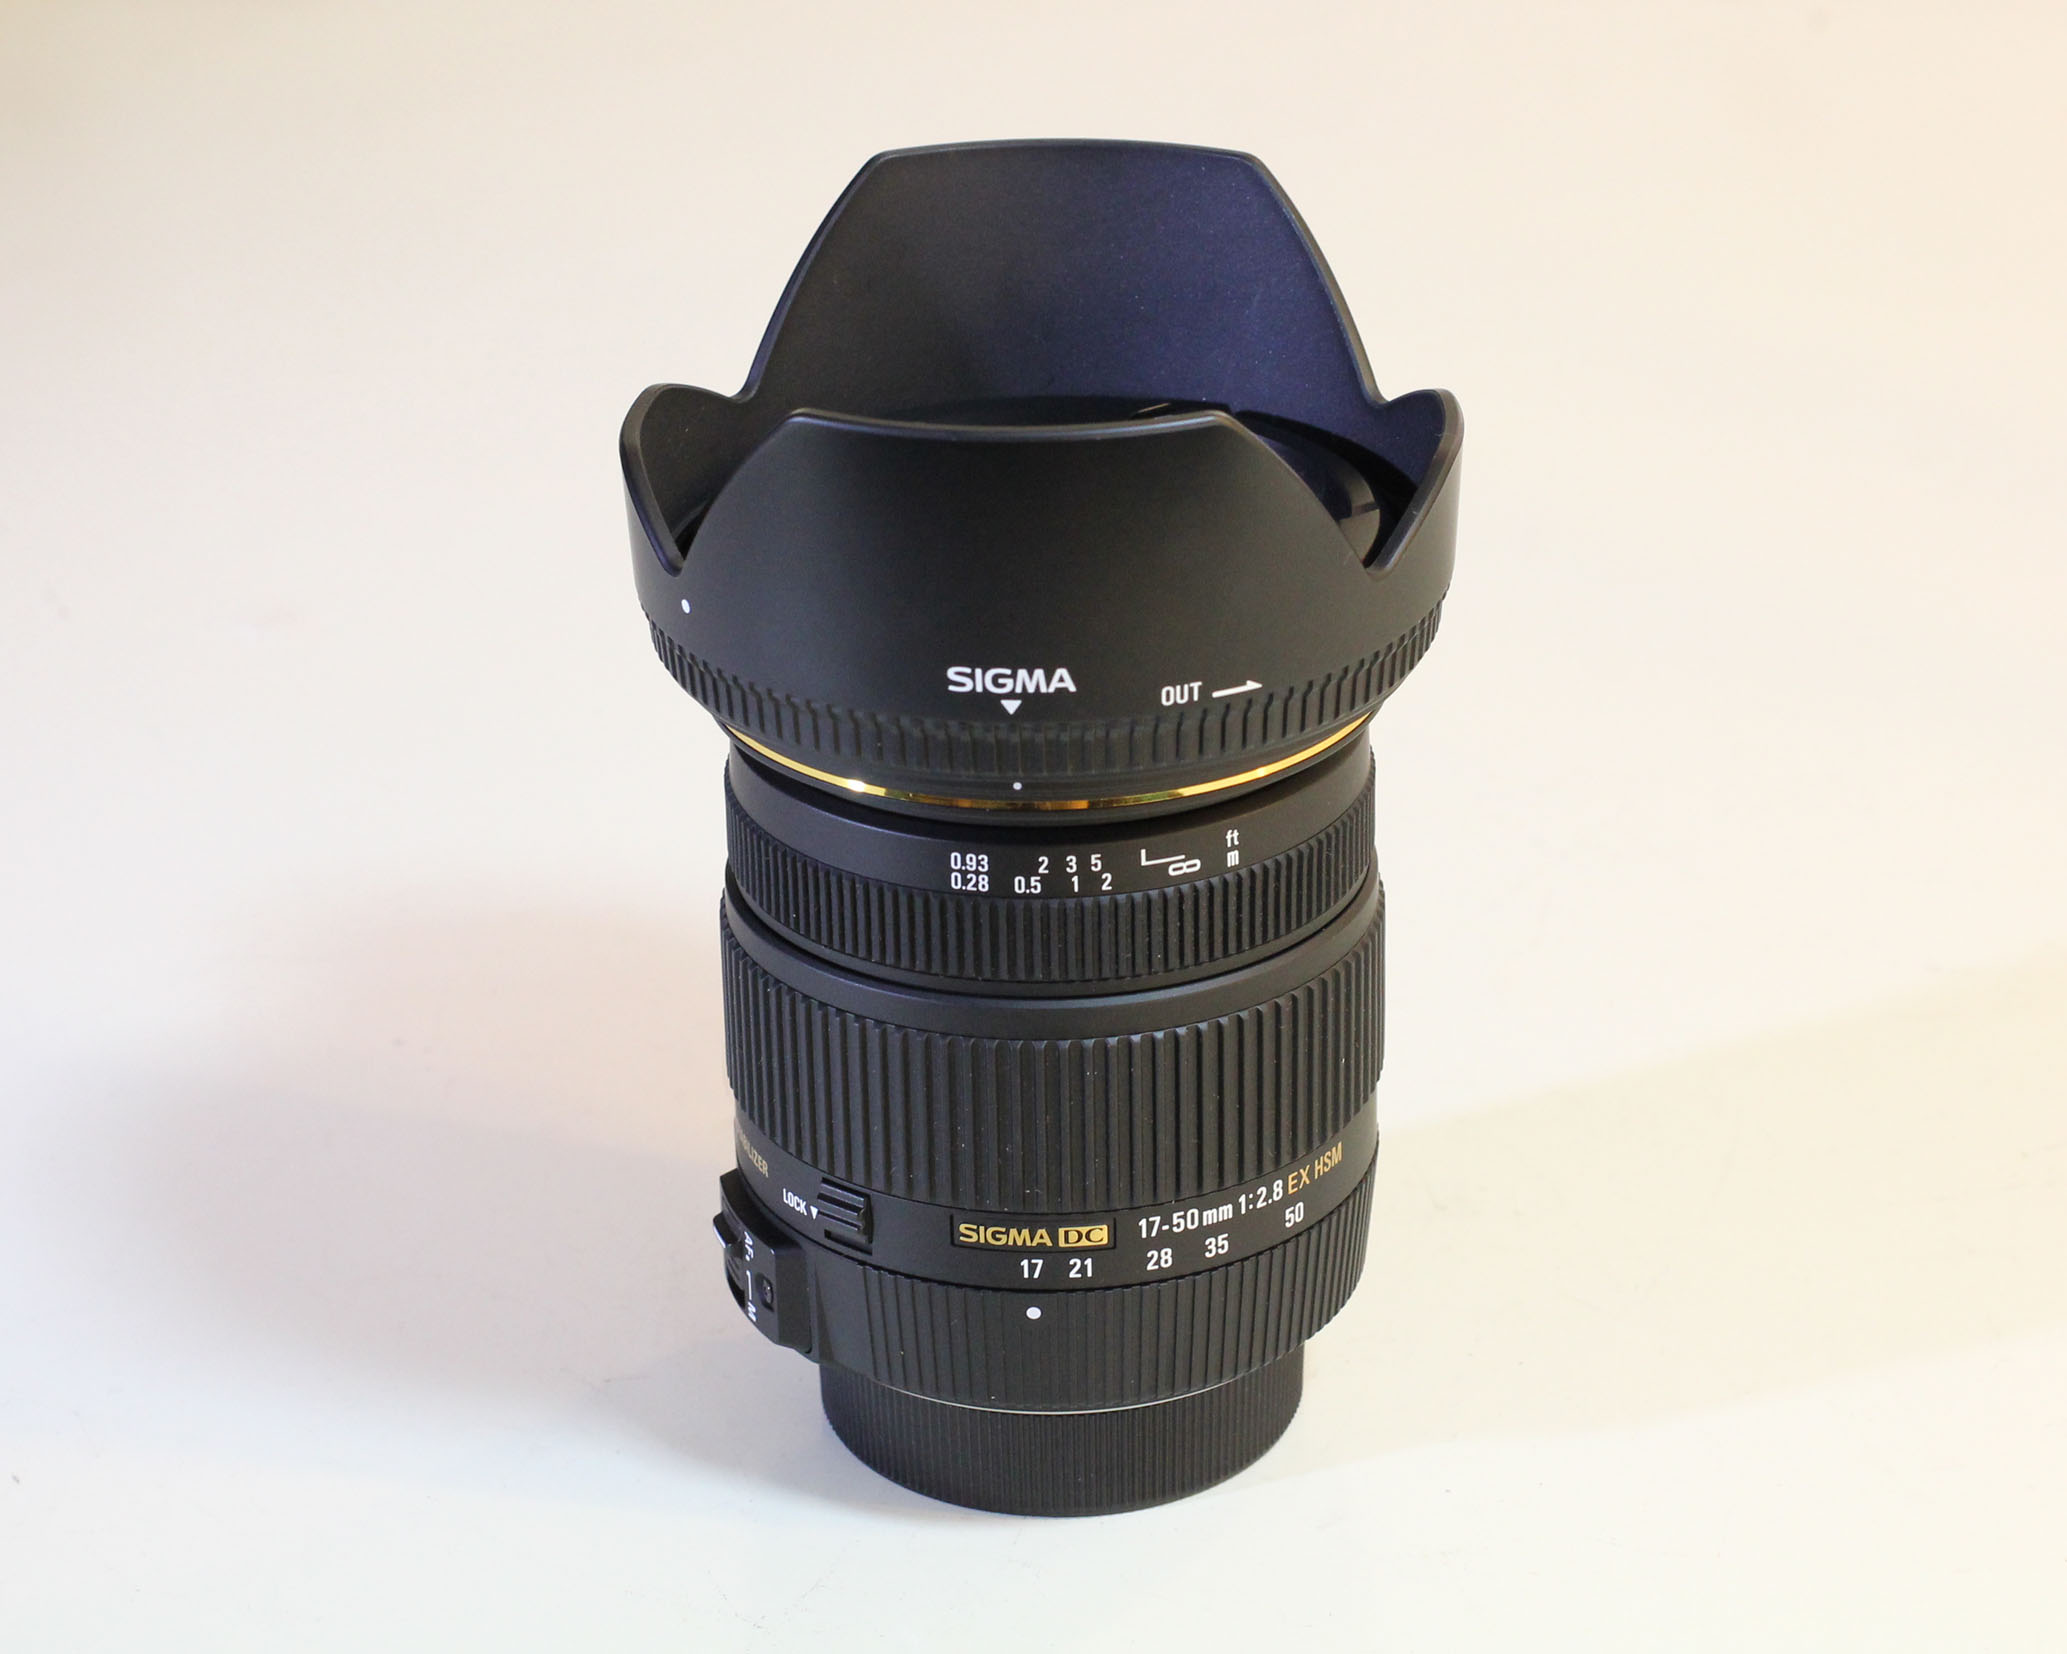 Sigma 17-50mm f/2.8 EX DC HSM OS for Canon / Nikon